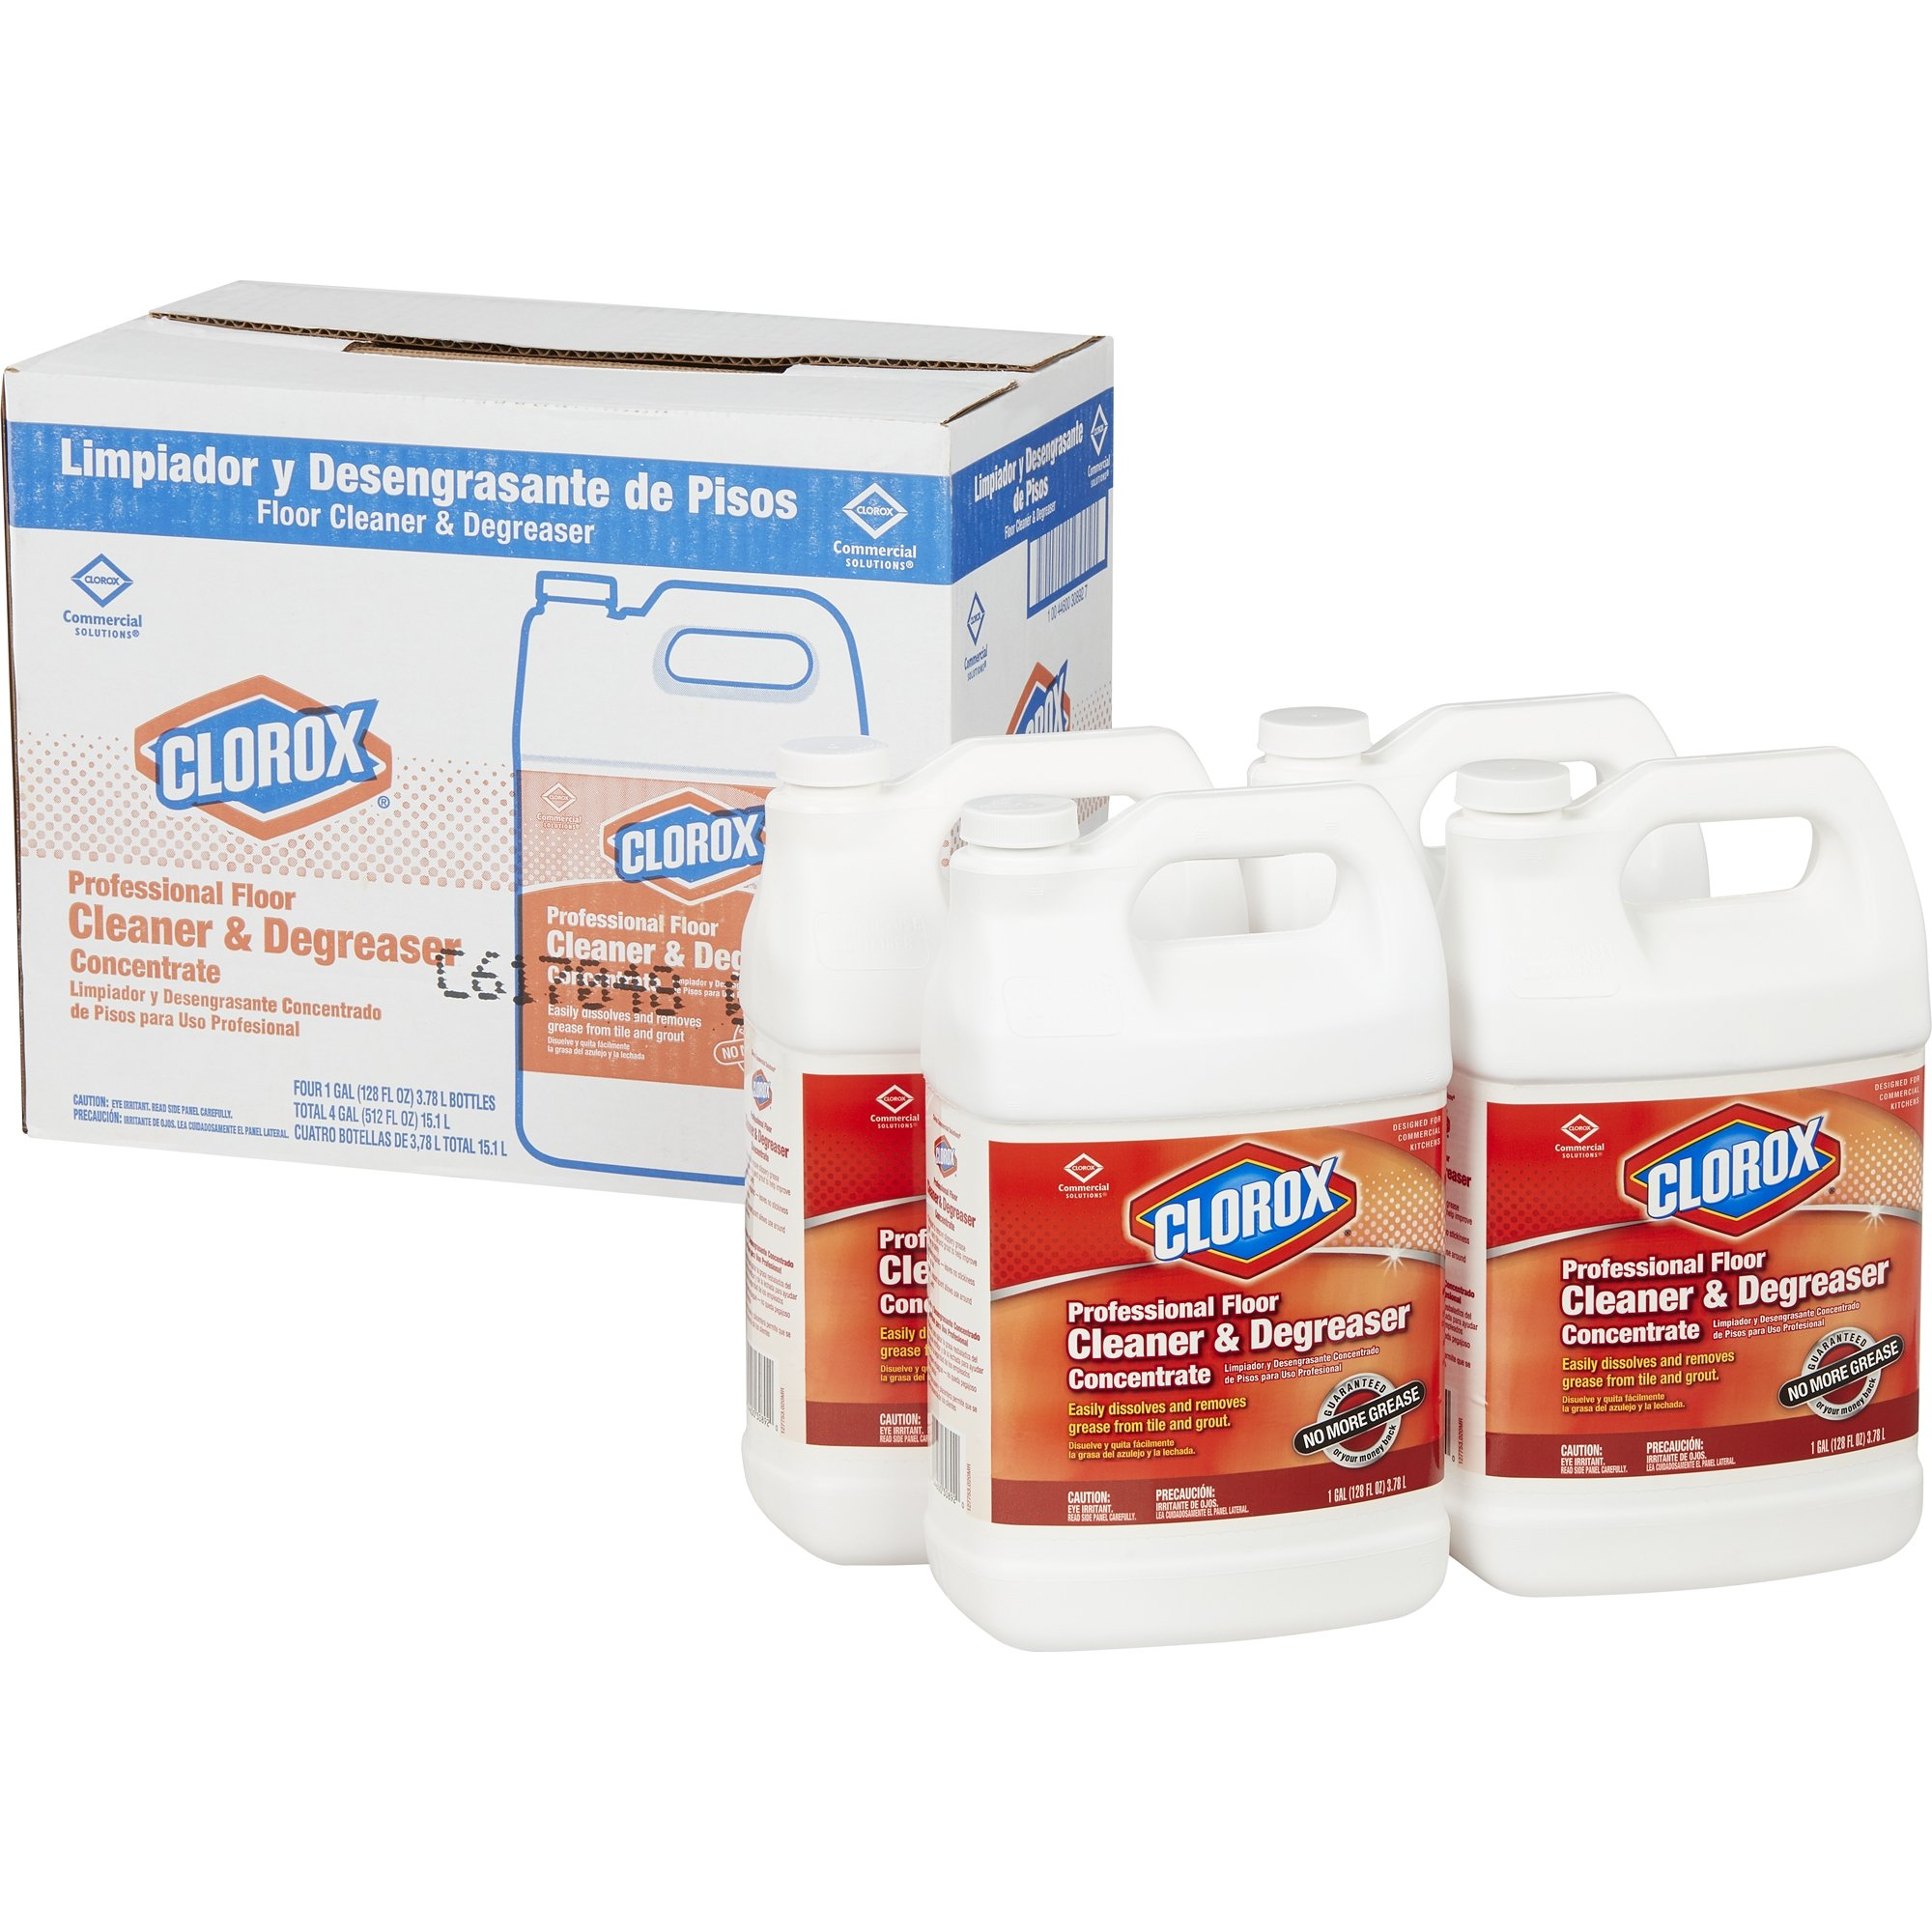 Clorox Professional Floor Cleaner & Degreaser Concentrate, 128 Ounces, 4 Bottles/Case